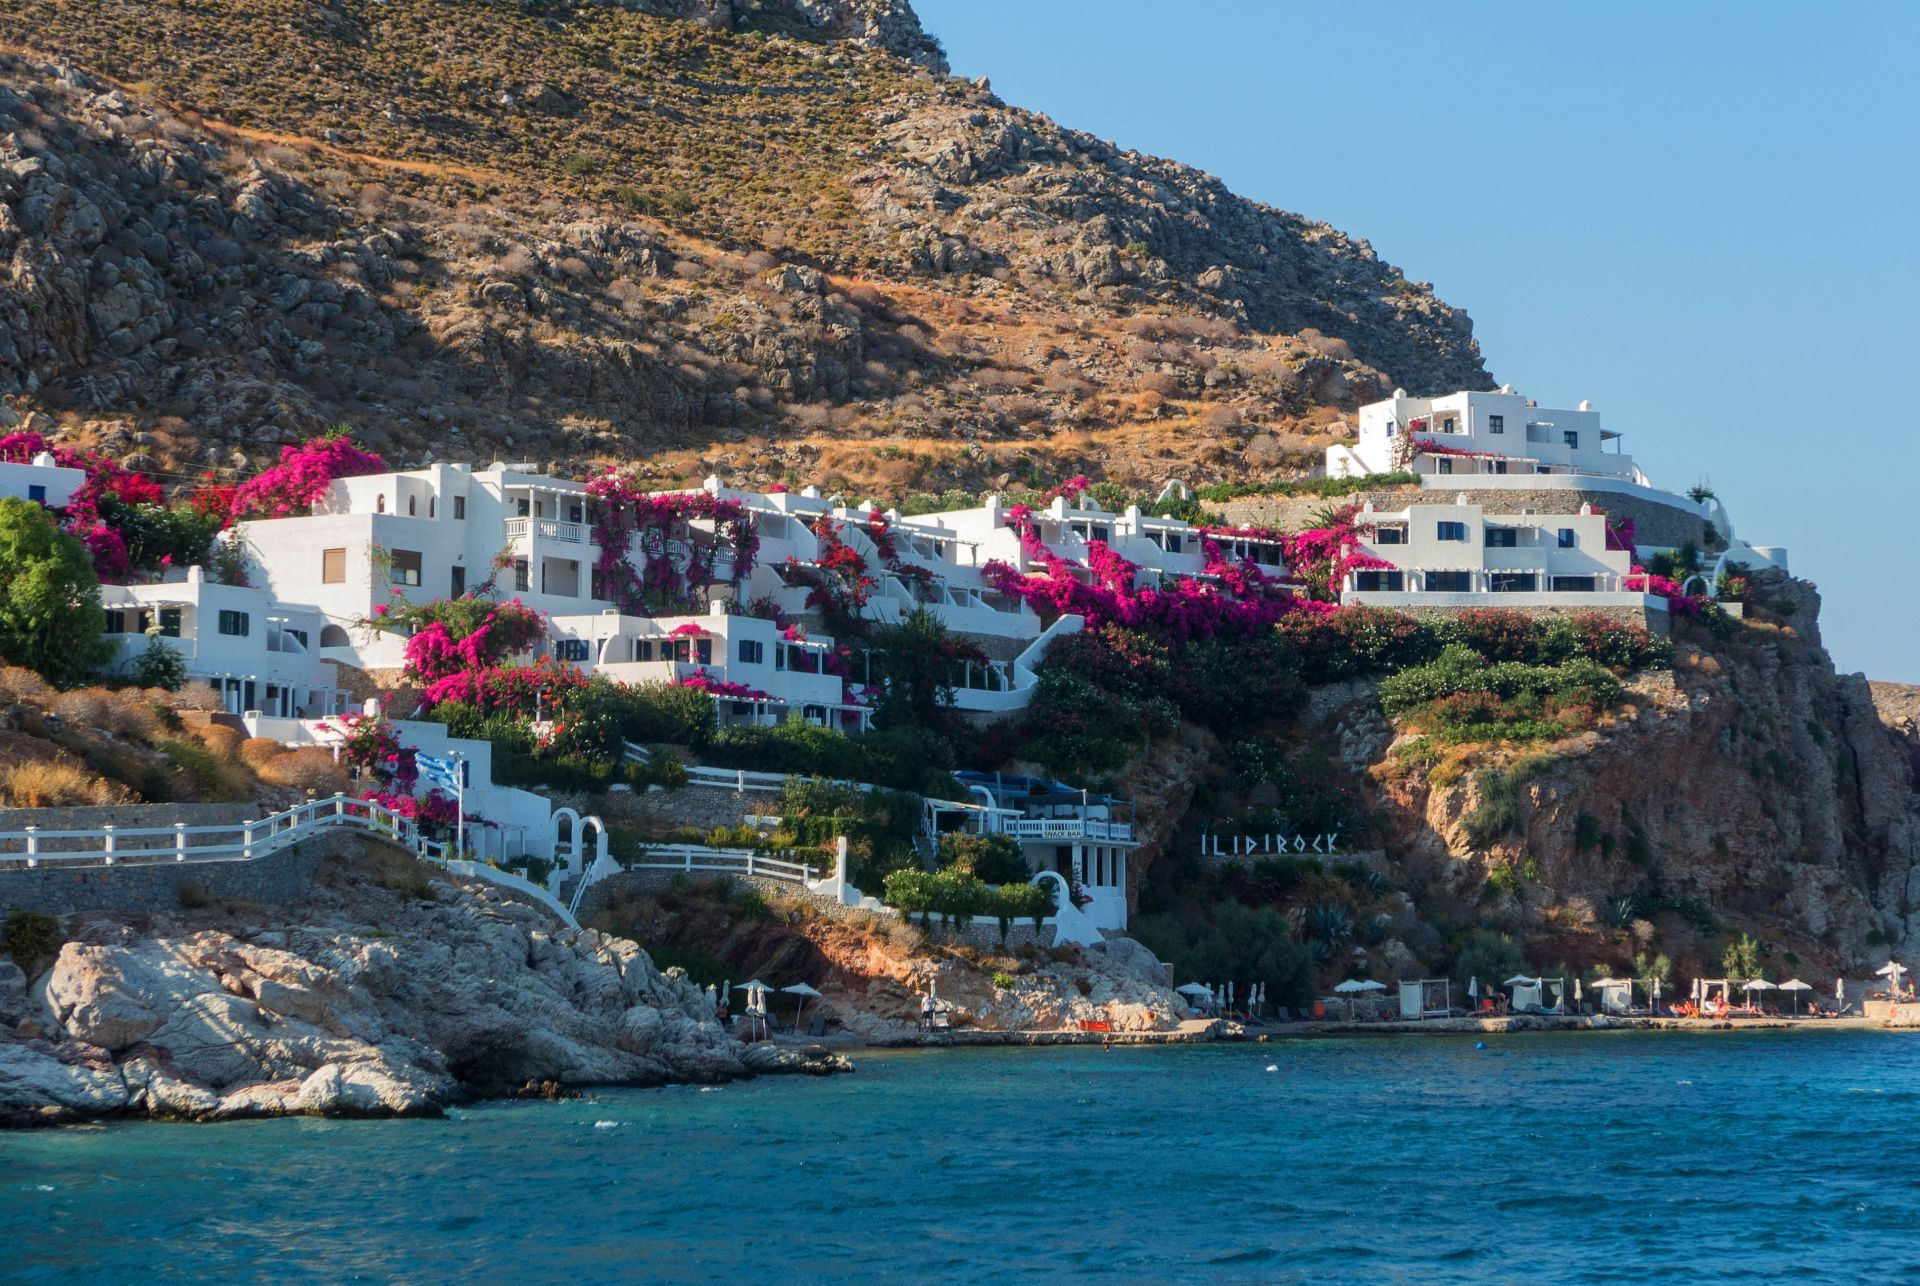 Accommodation and hotels in Tilos